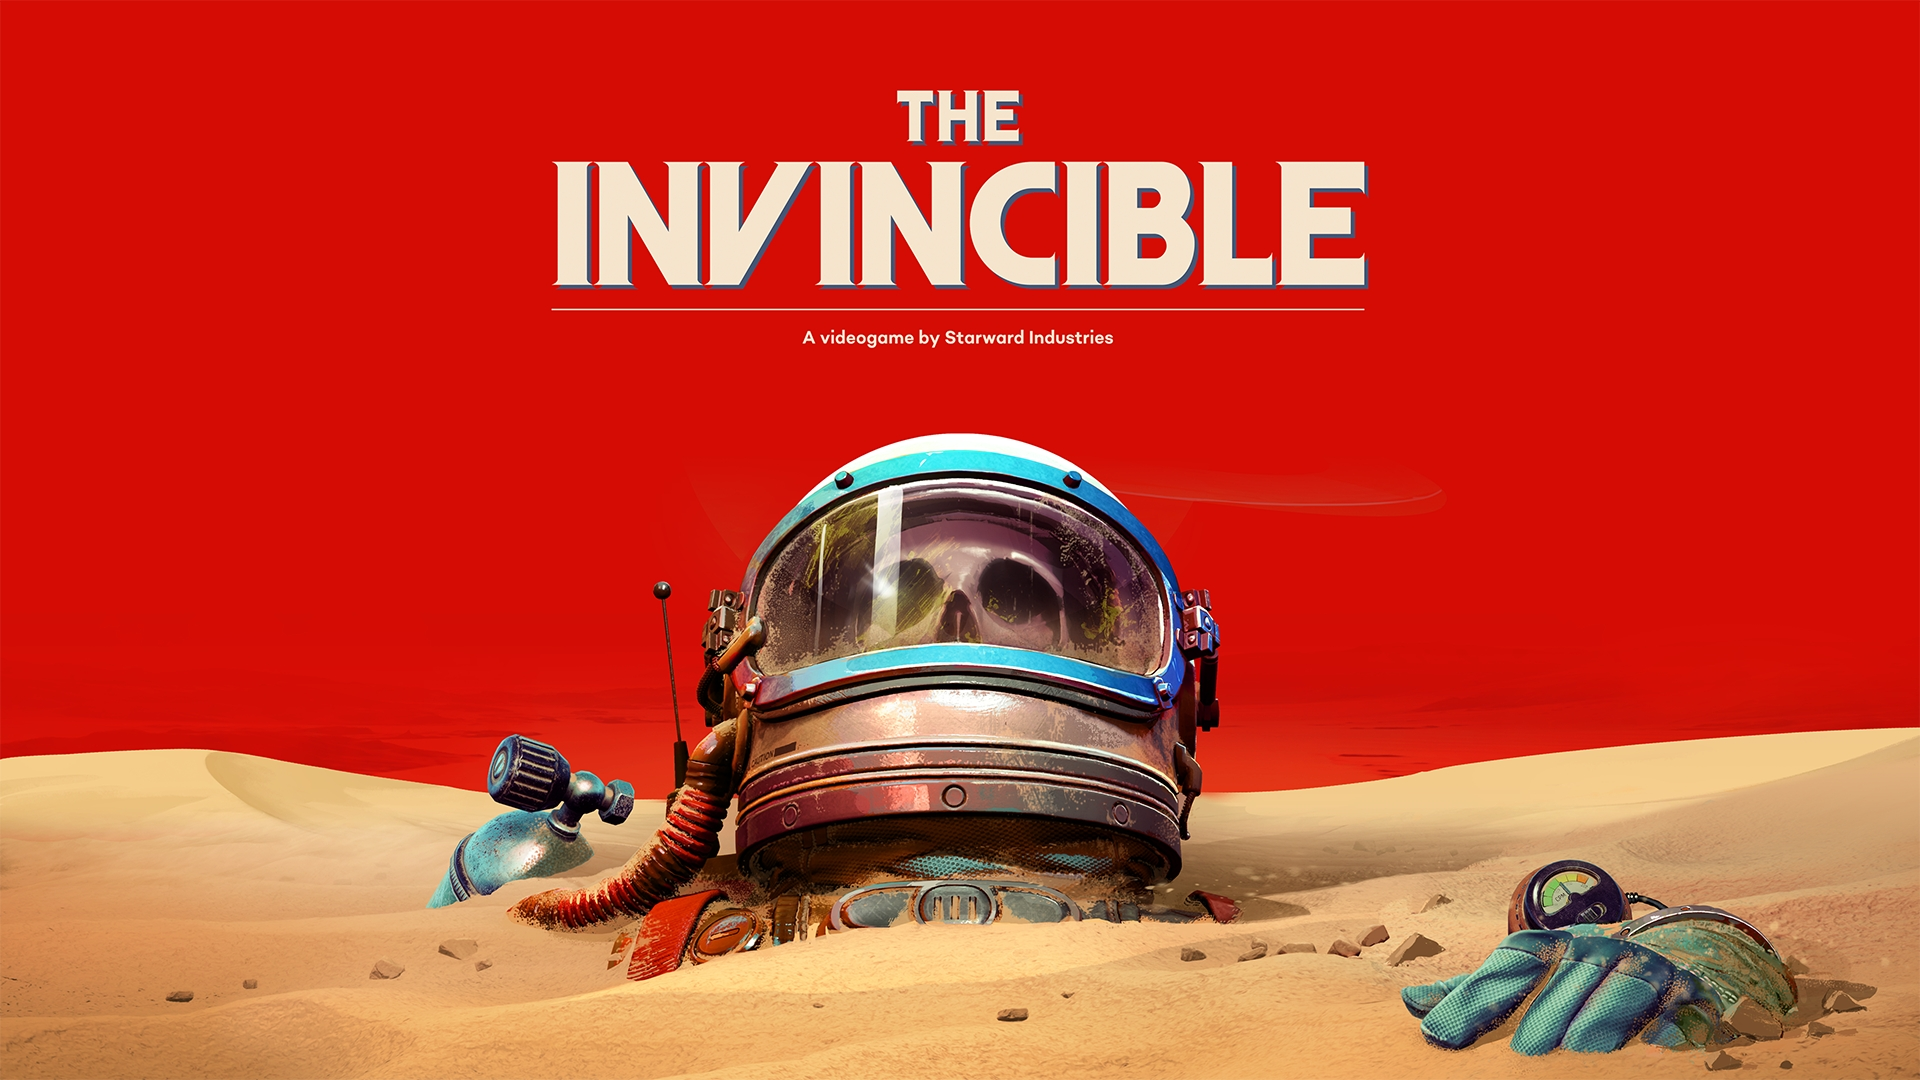 The-Invincible_2020_09-15-20_008